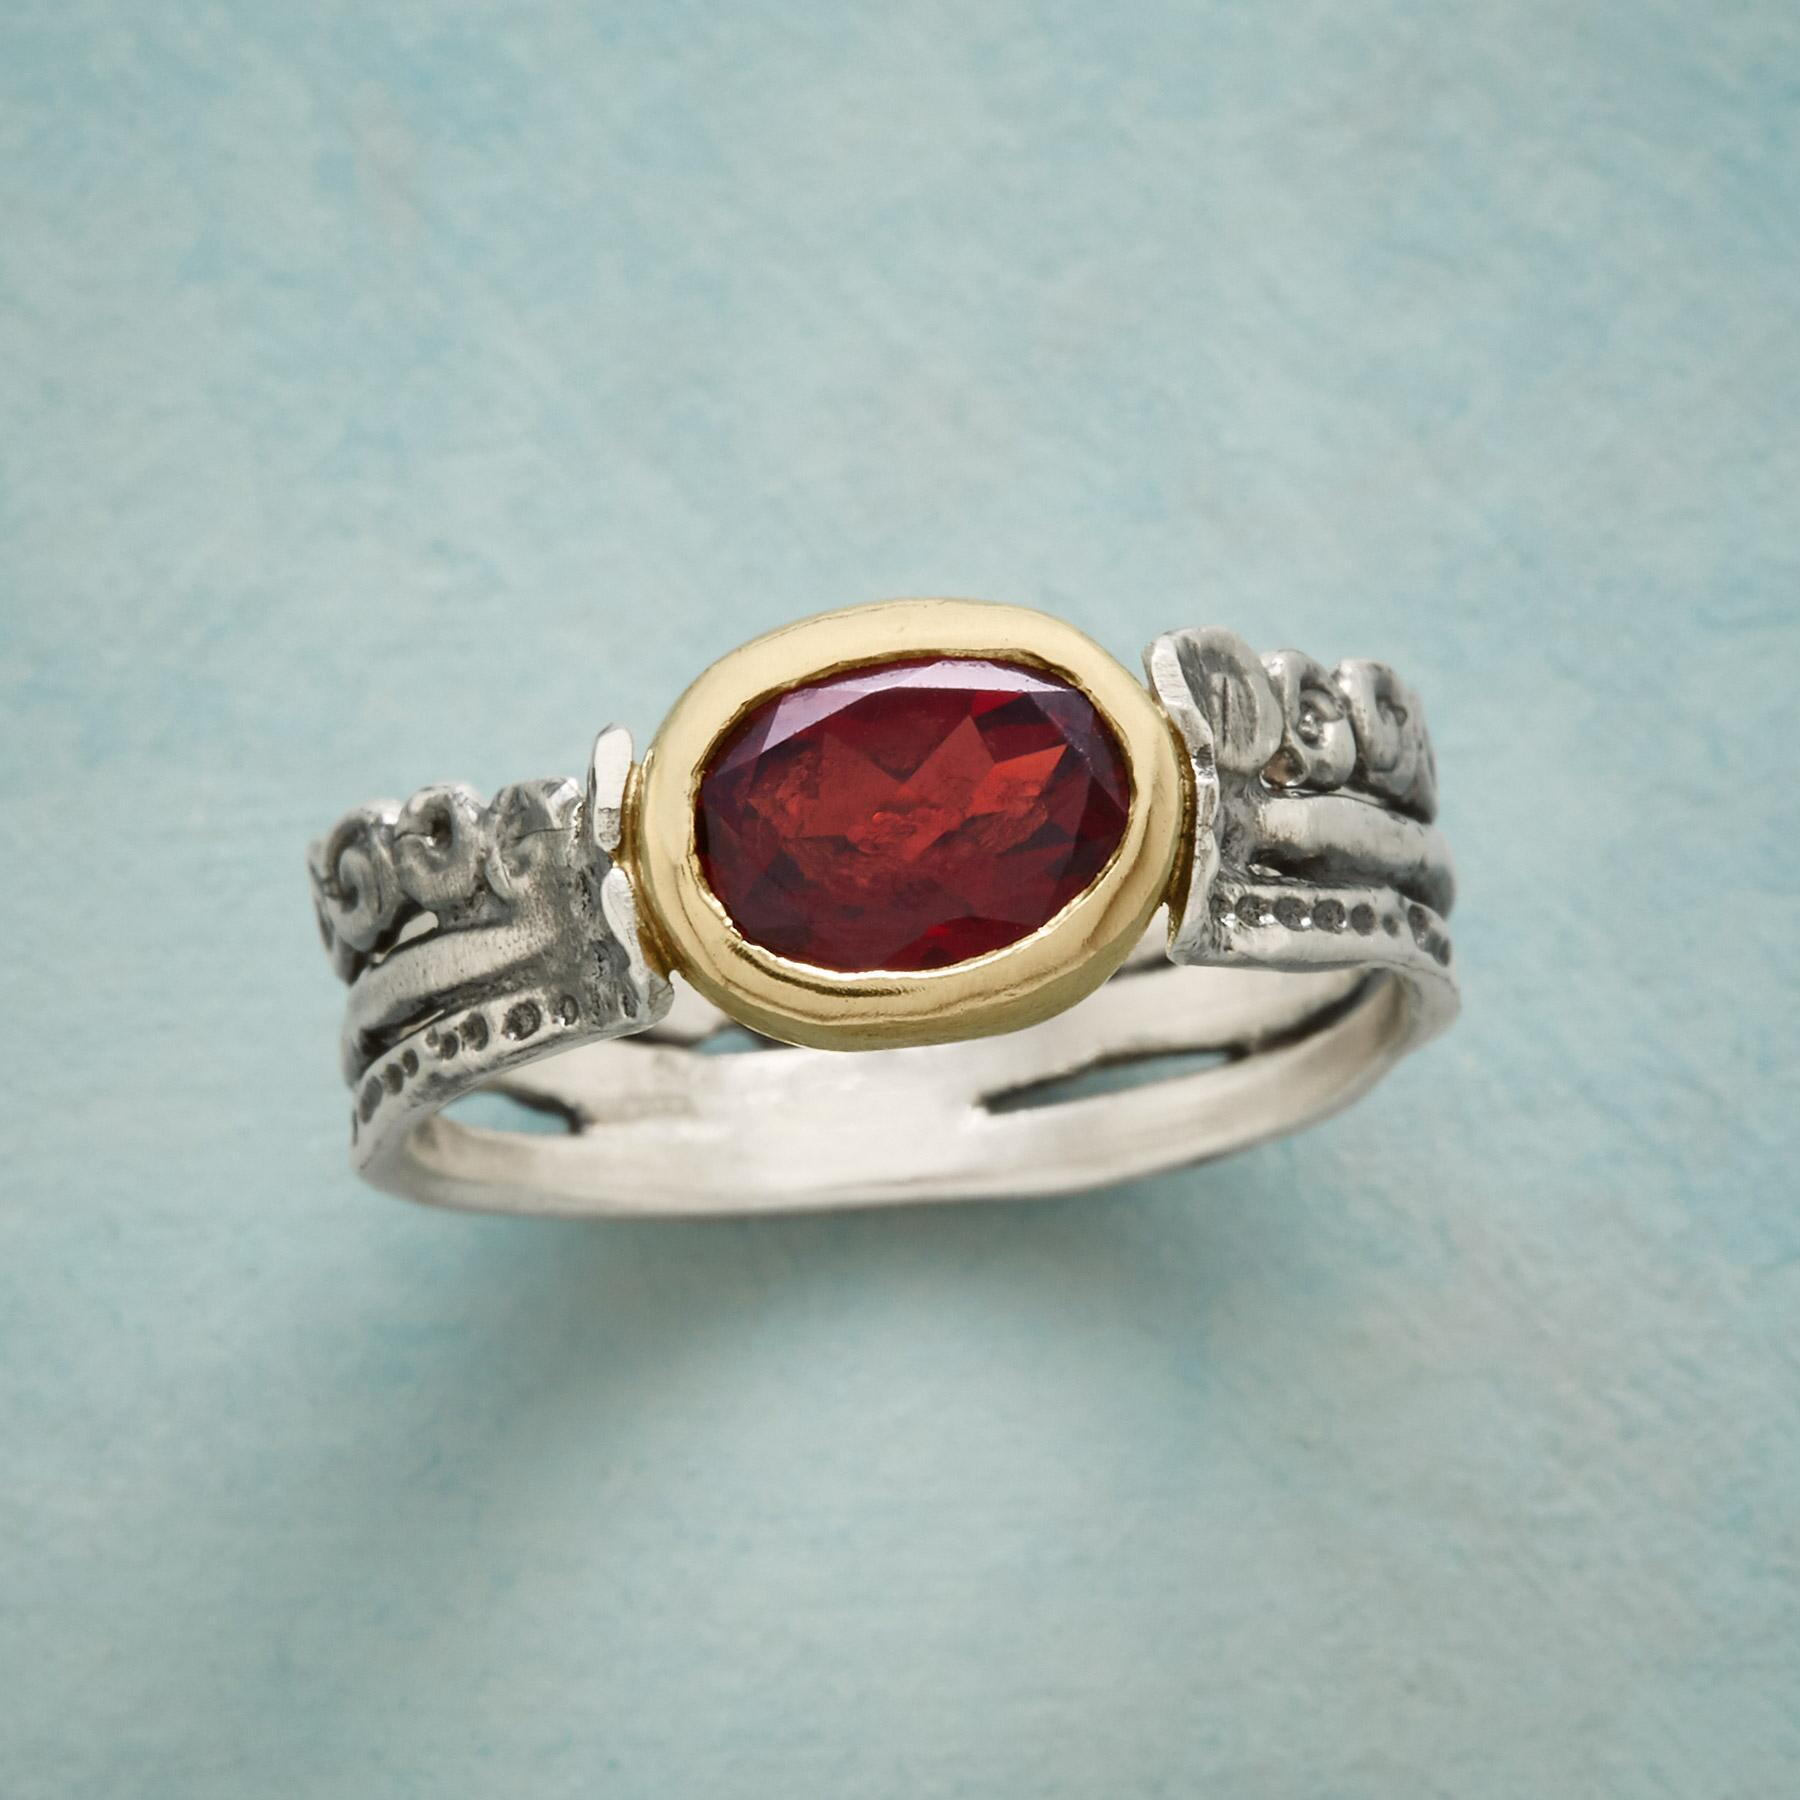 MYTHOLOGY RING: View 1